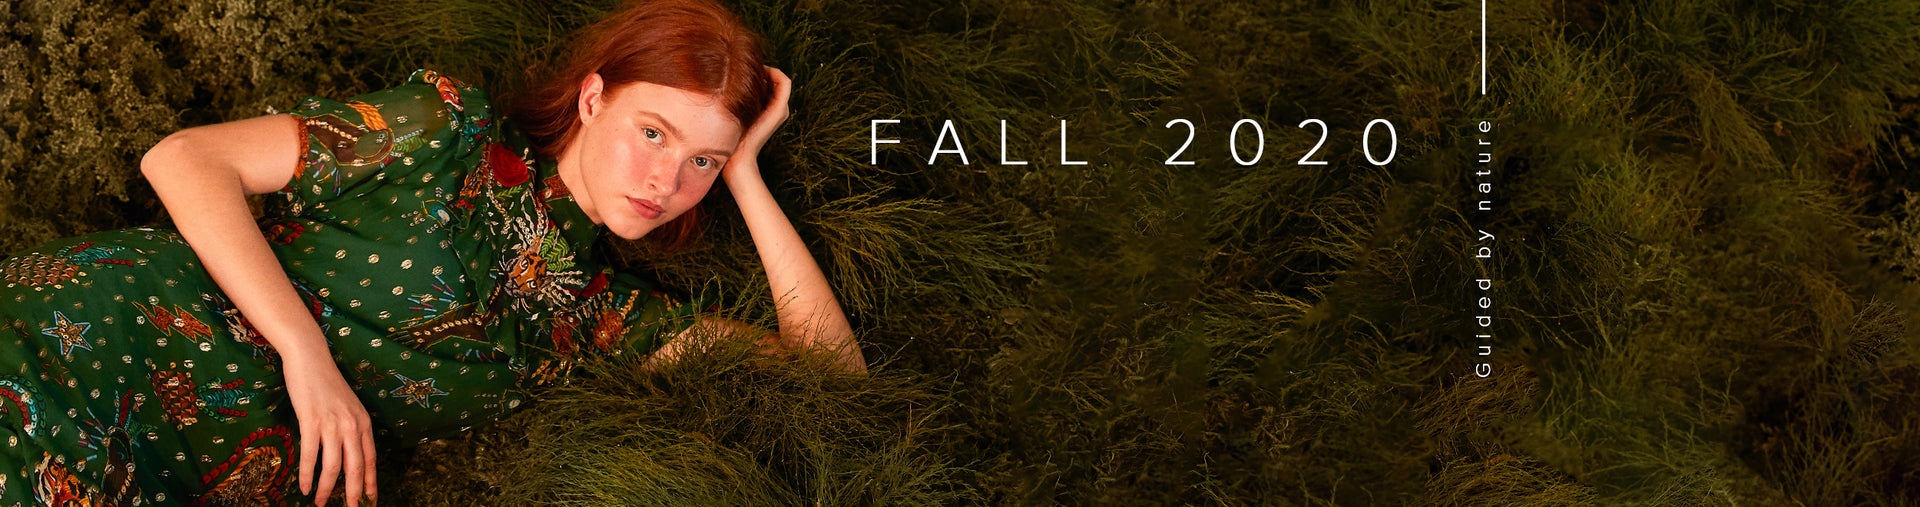 Fall 20 - Obsession Image